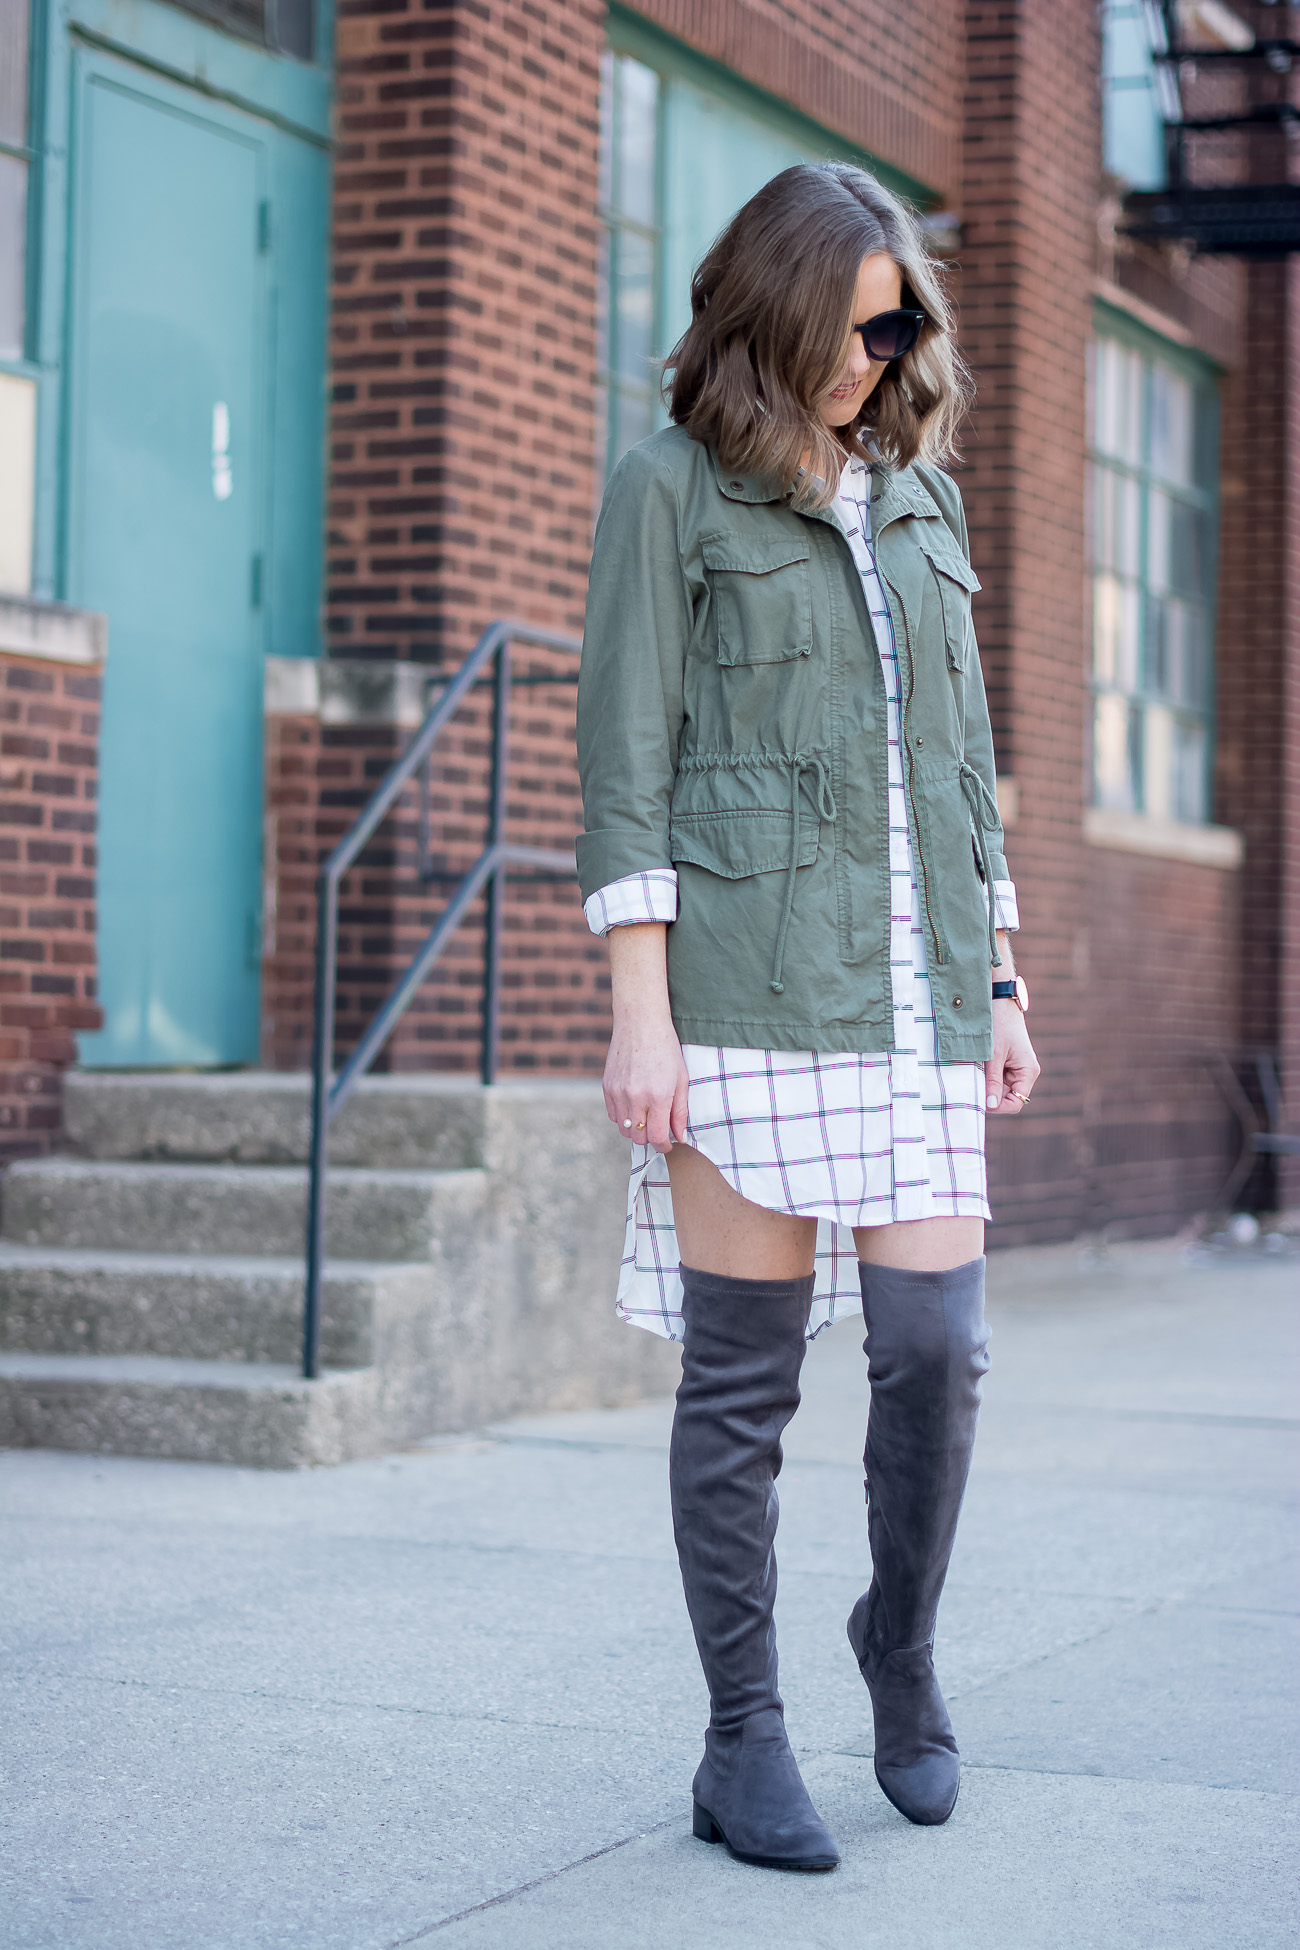 old navy cargo jacket, black and white grid print shirtdress, gray over the knee flat boots, simple jewelry